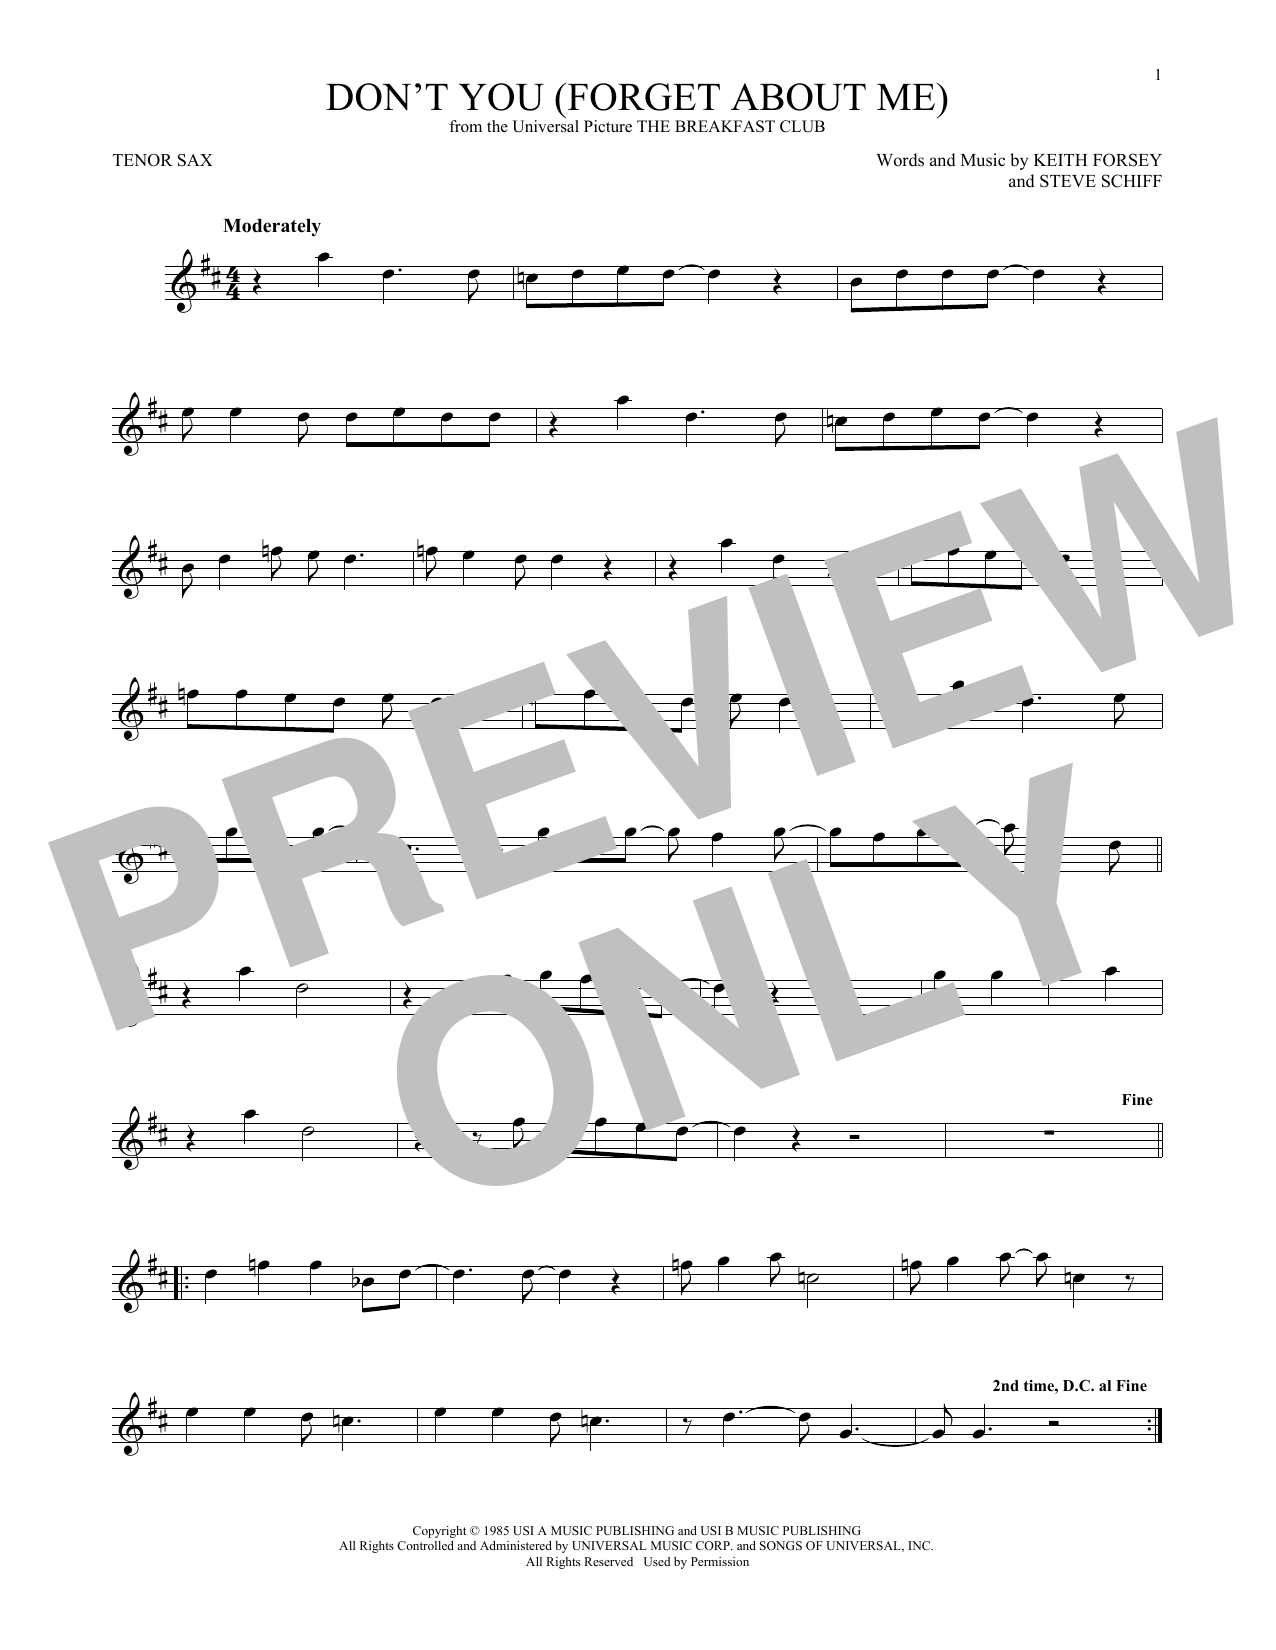 Don't You (Forget About Me) (Tenor Sax Solo)